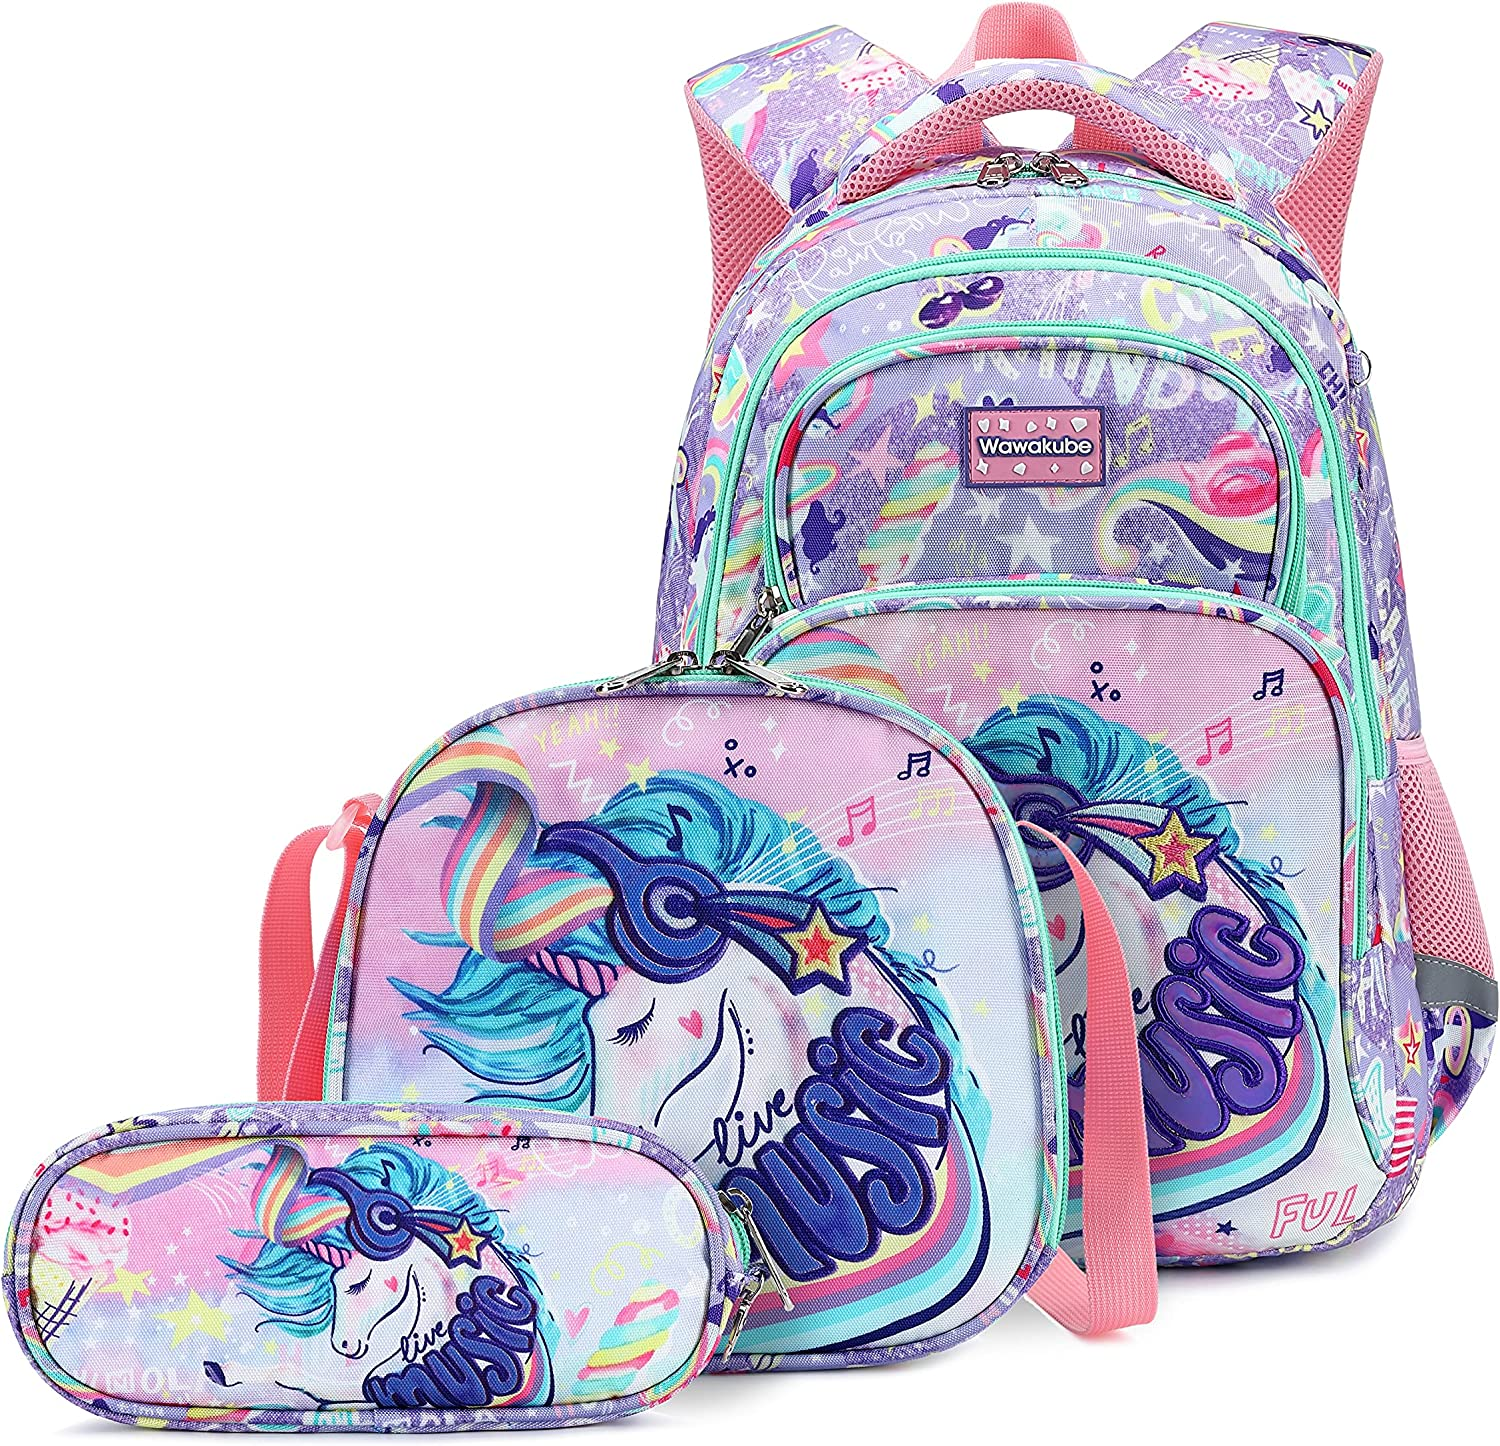 3Pcs Girls Unicorn Backpack Set with Lunch Box Pencil Case, School Book Bag for Kids Elementary Preschool